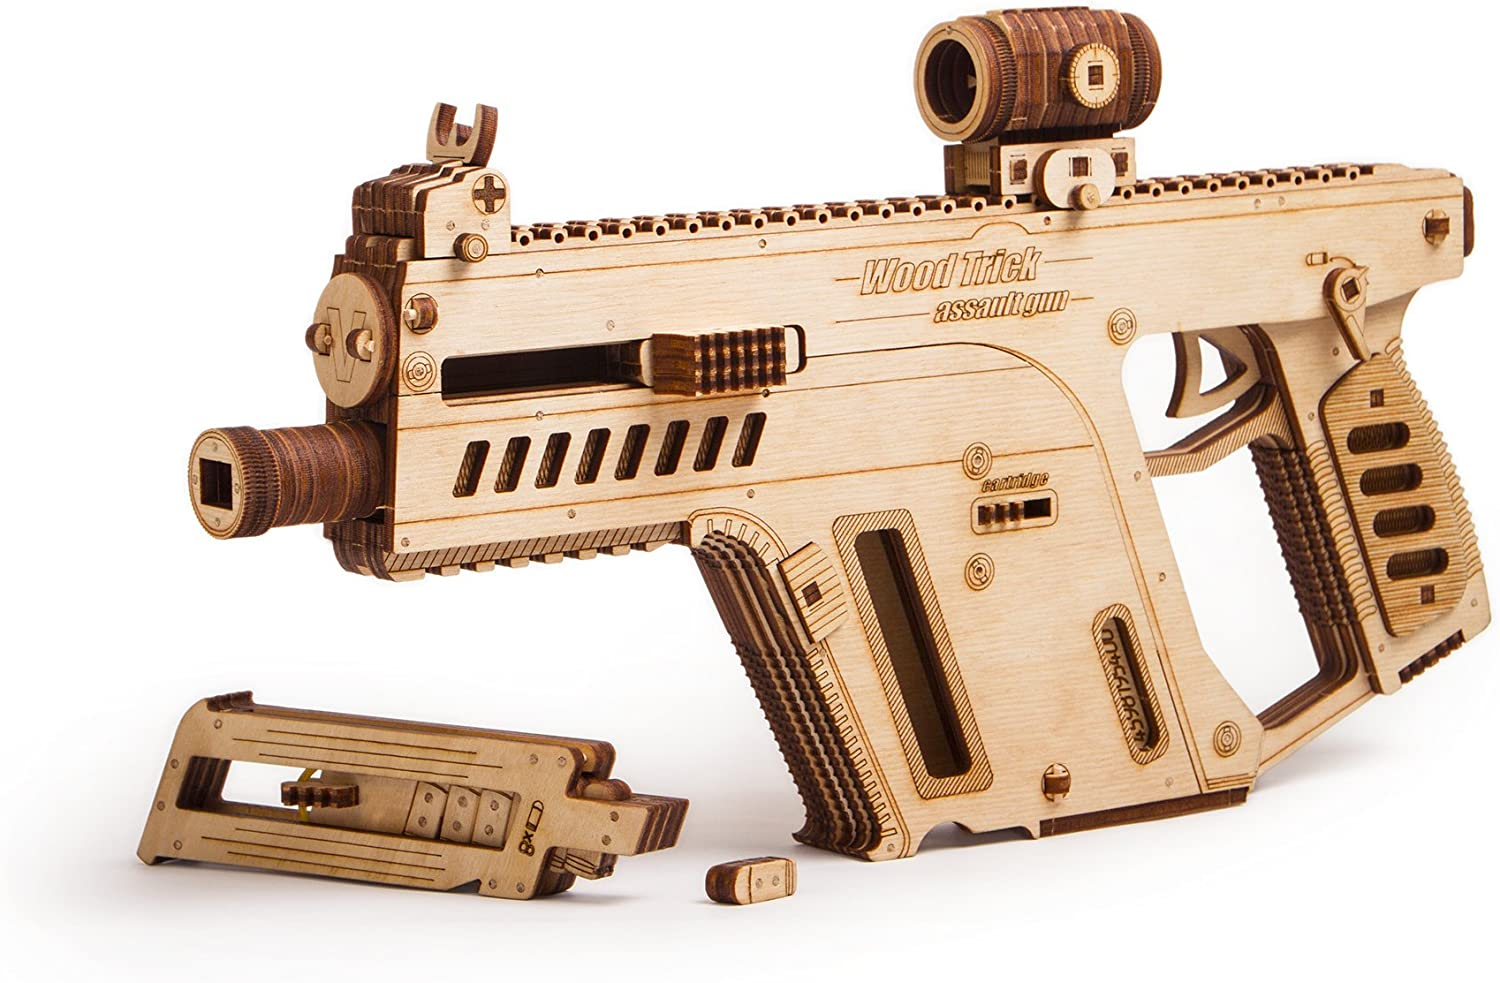 Amazon Com Wood Trick Assault Gun Wooden Model Kit For Adults And Teens To Build Toy Gun Guns For Kids 3d Wooden Puzzle Mechanical Model Toys Games